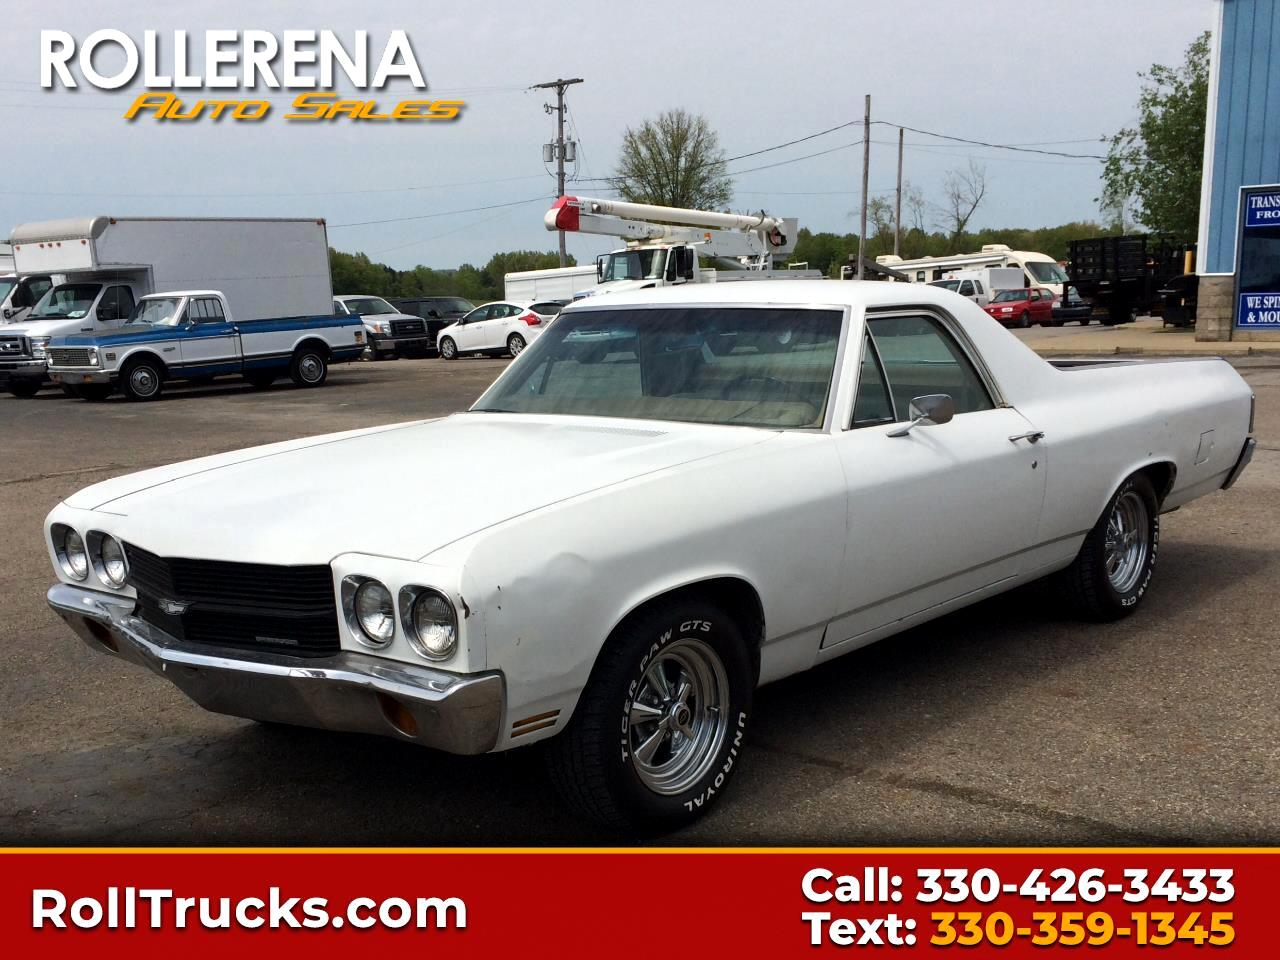 1970 Chevrolet El Camino Coupe